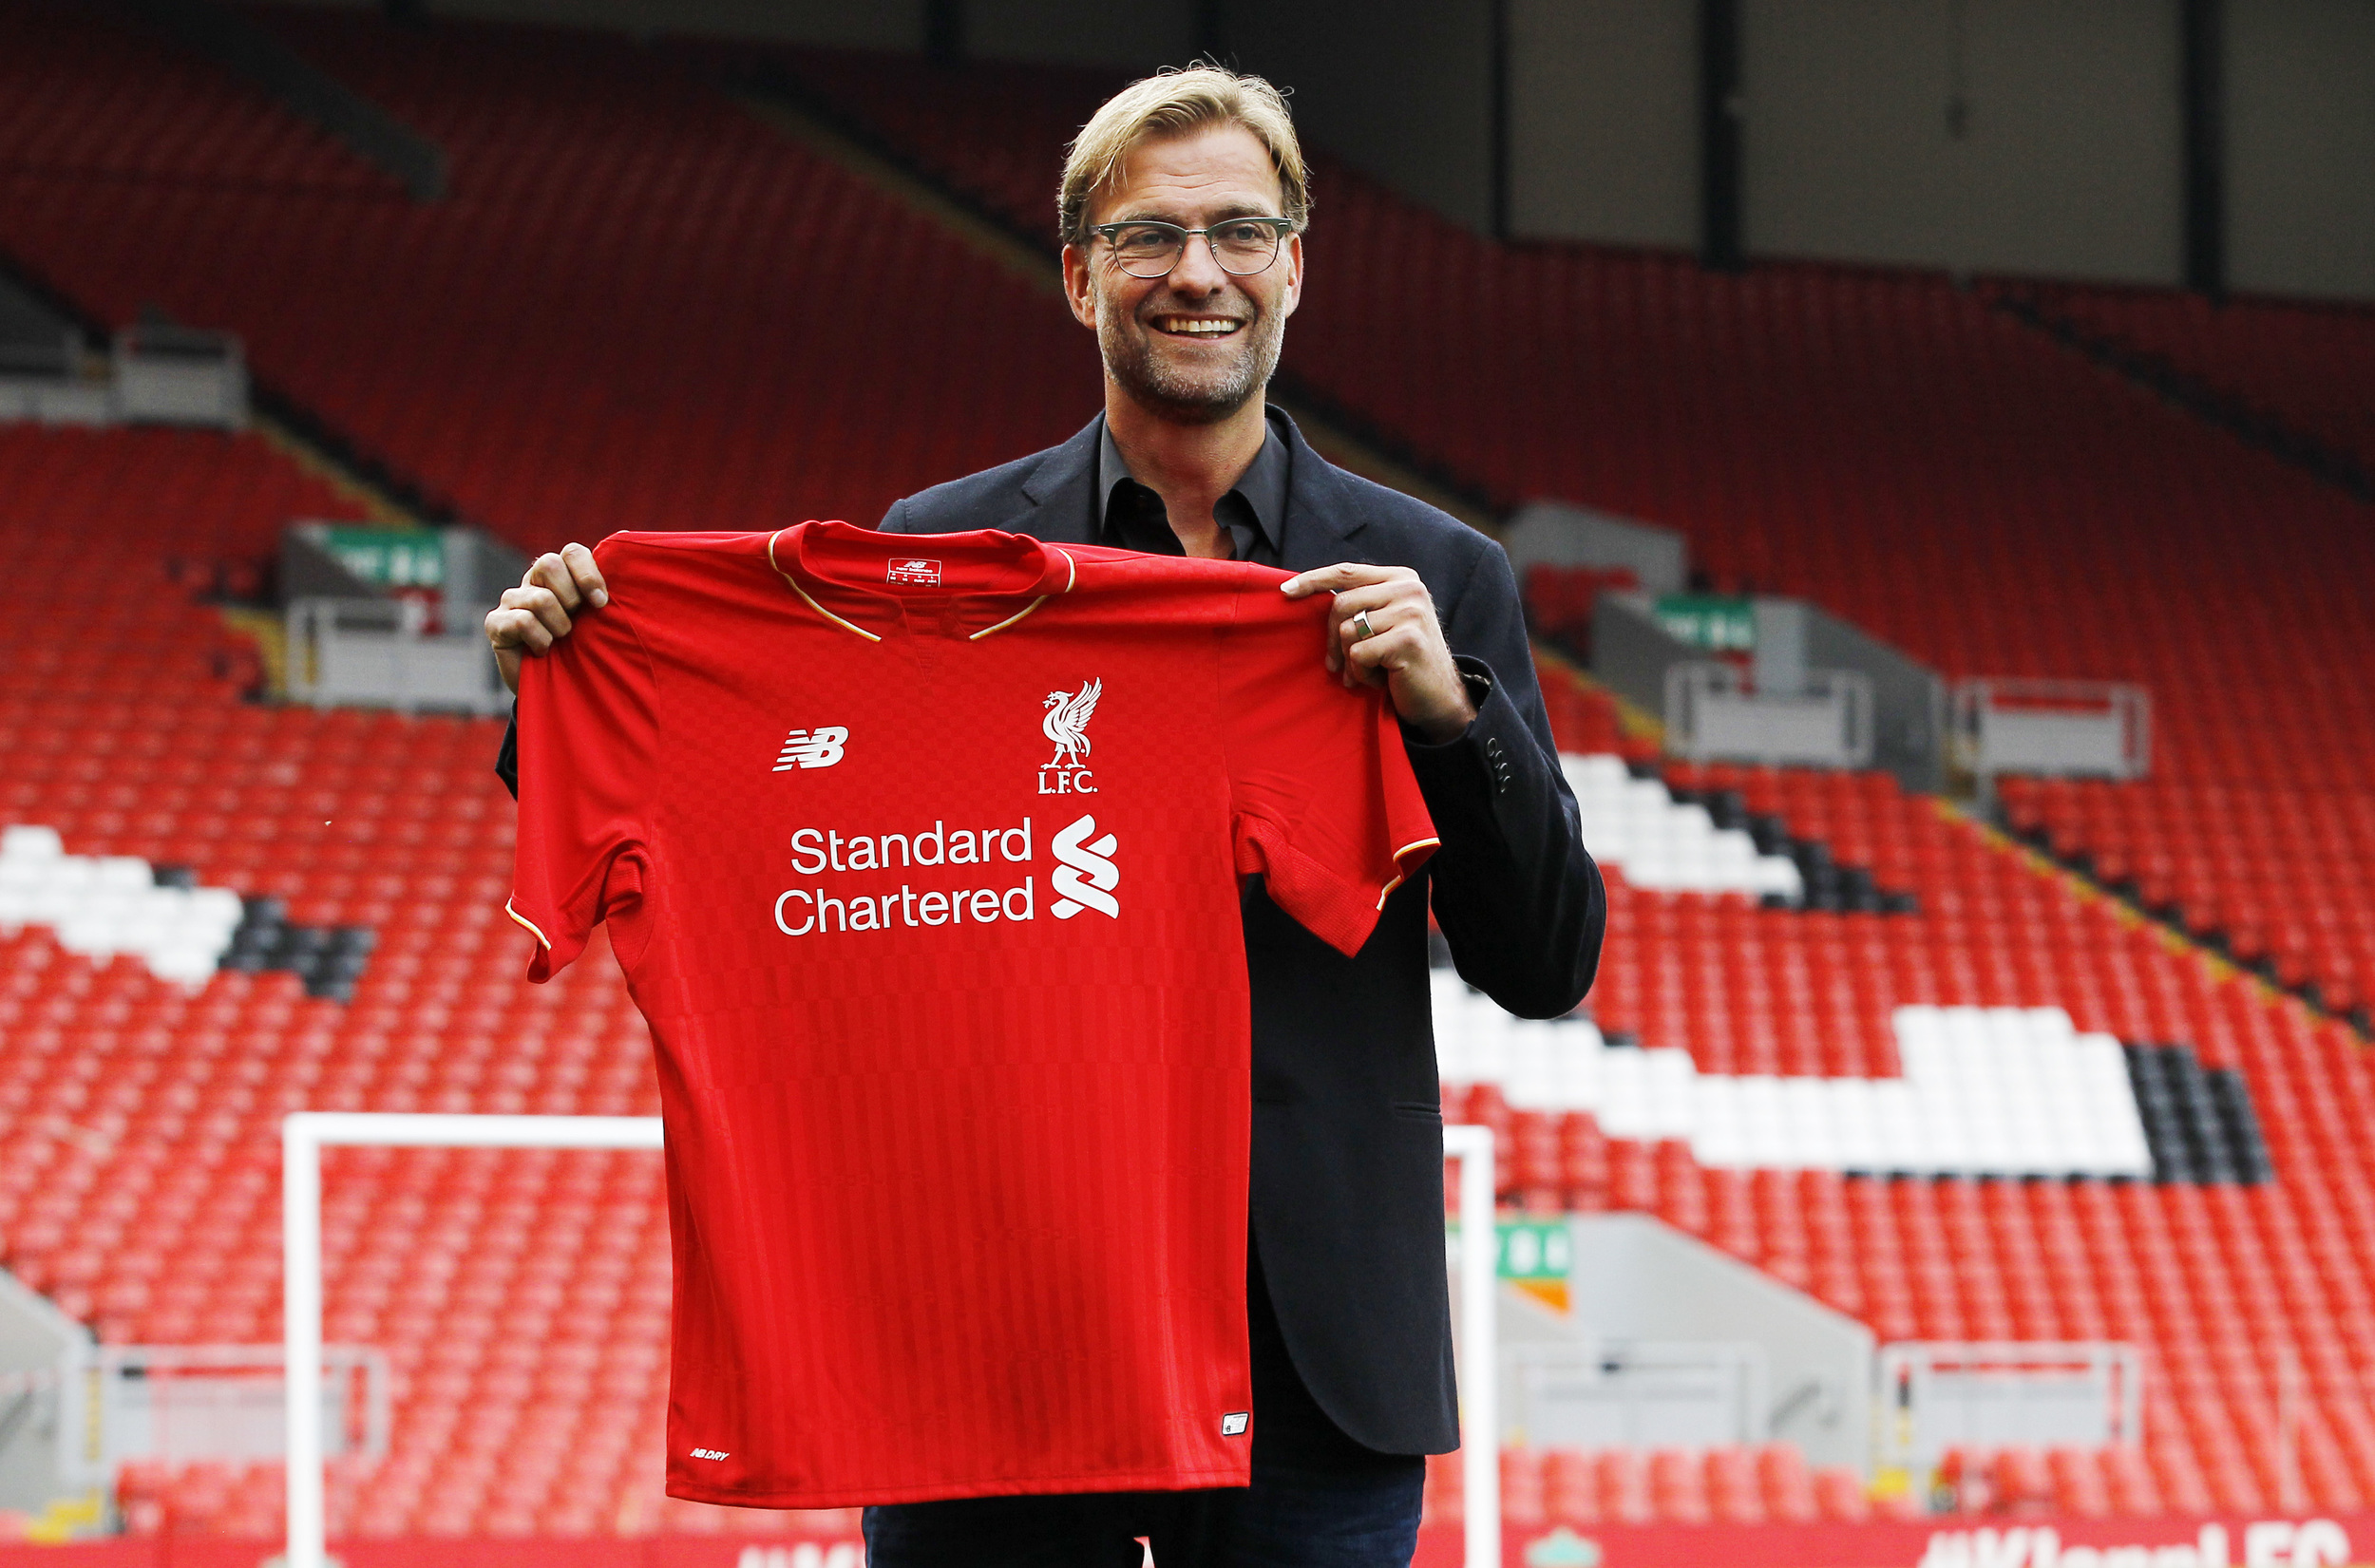 New Liverpool manager Jürgen Klopp poses after the press conference. He comes to Anfield with a weight of expectation and faces a difficult challenge as the new manager of a prominent club.Image supplied by Action Images / Craig Brough.